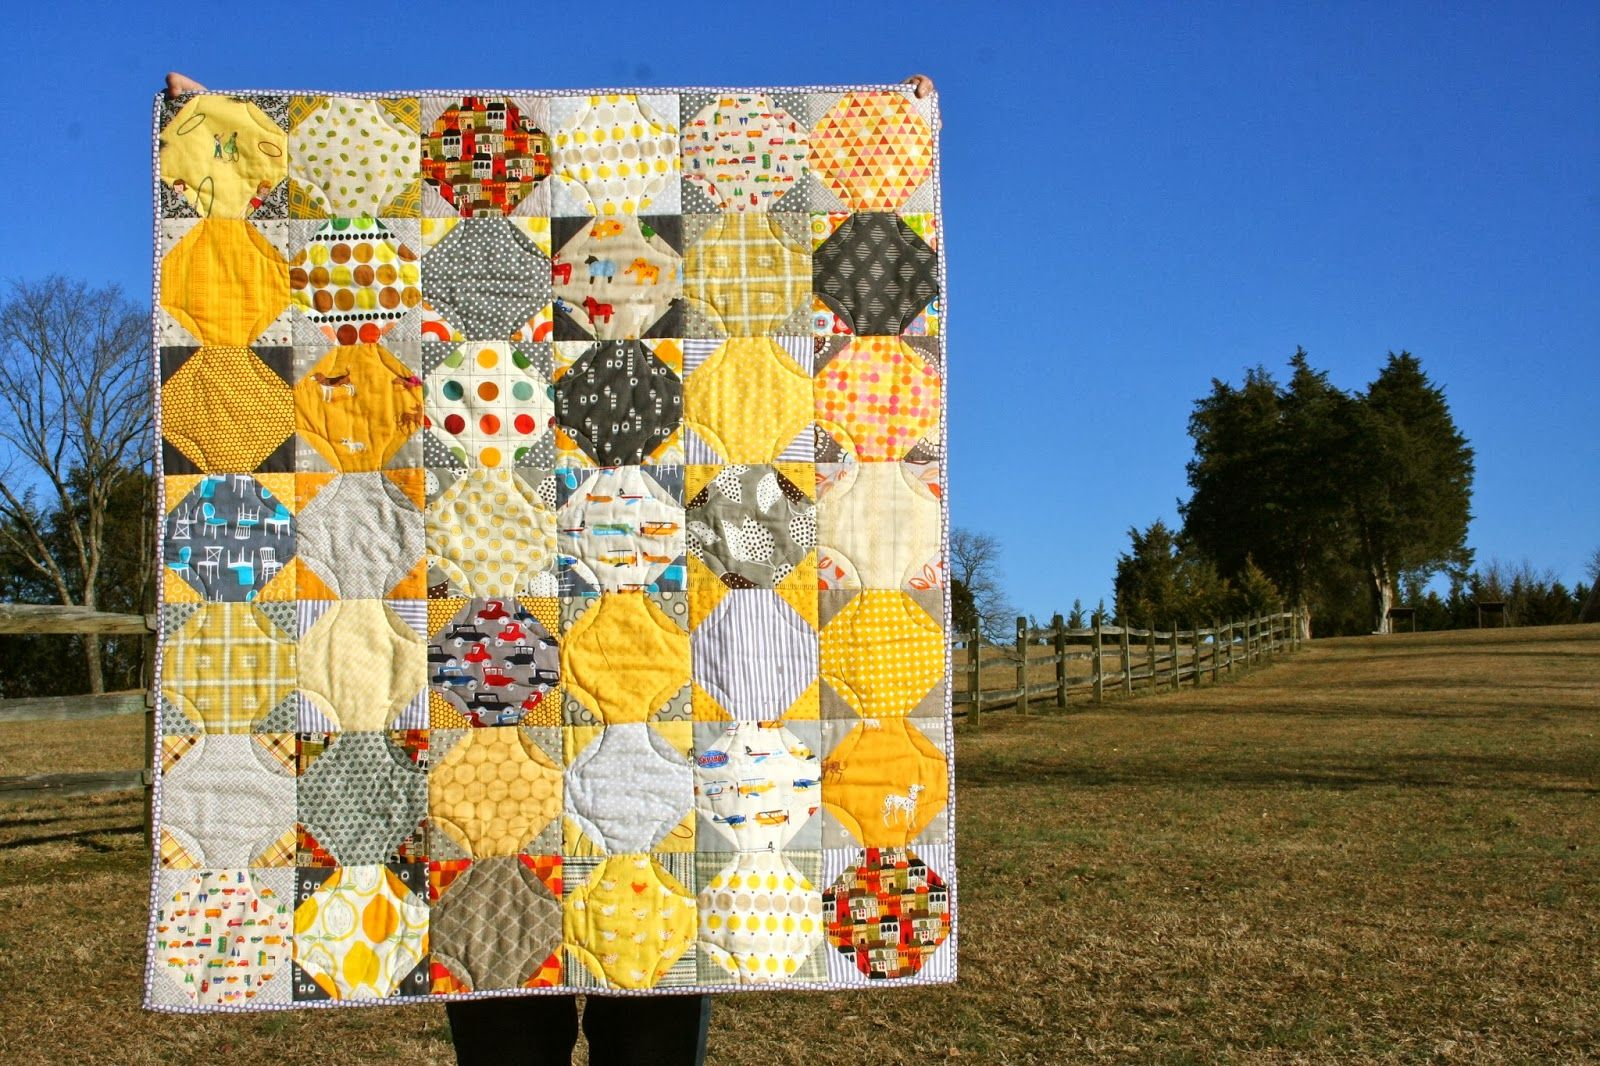 Babylove Quilt finish and a new Accuquilt fabric die cutting review